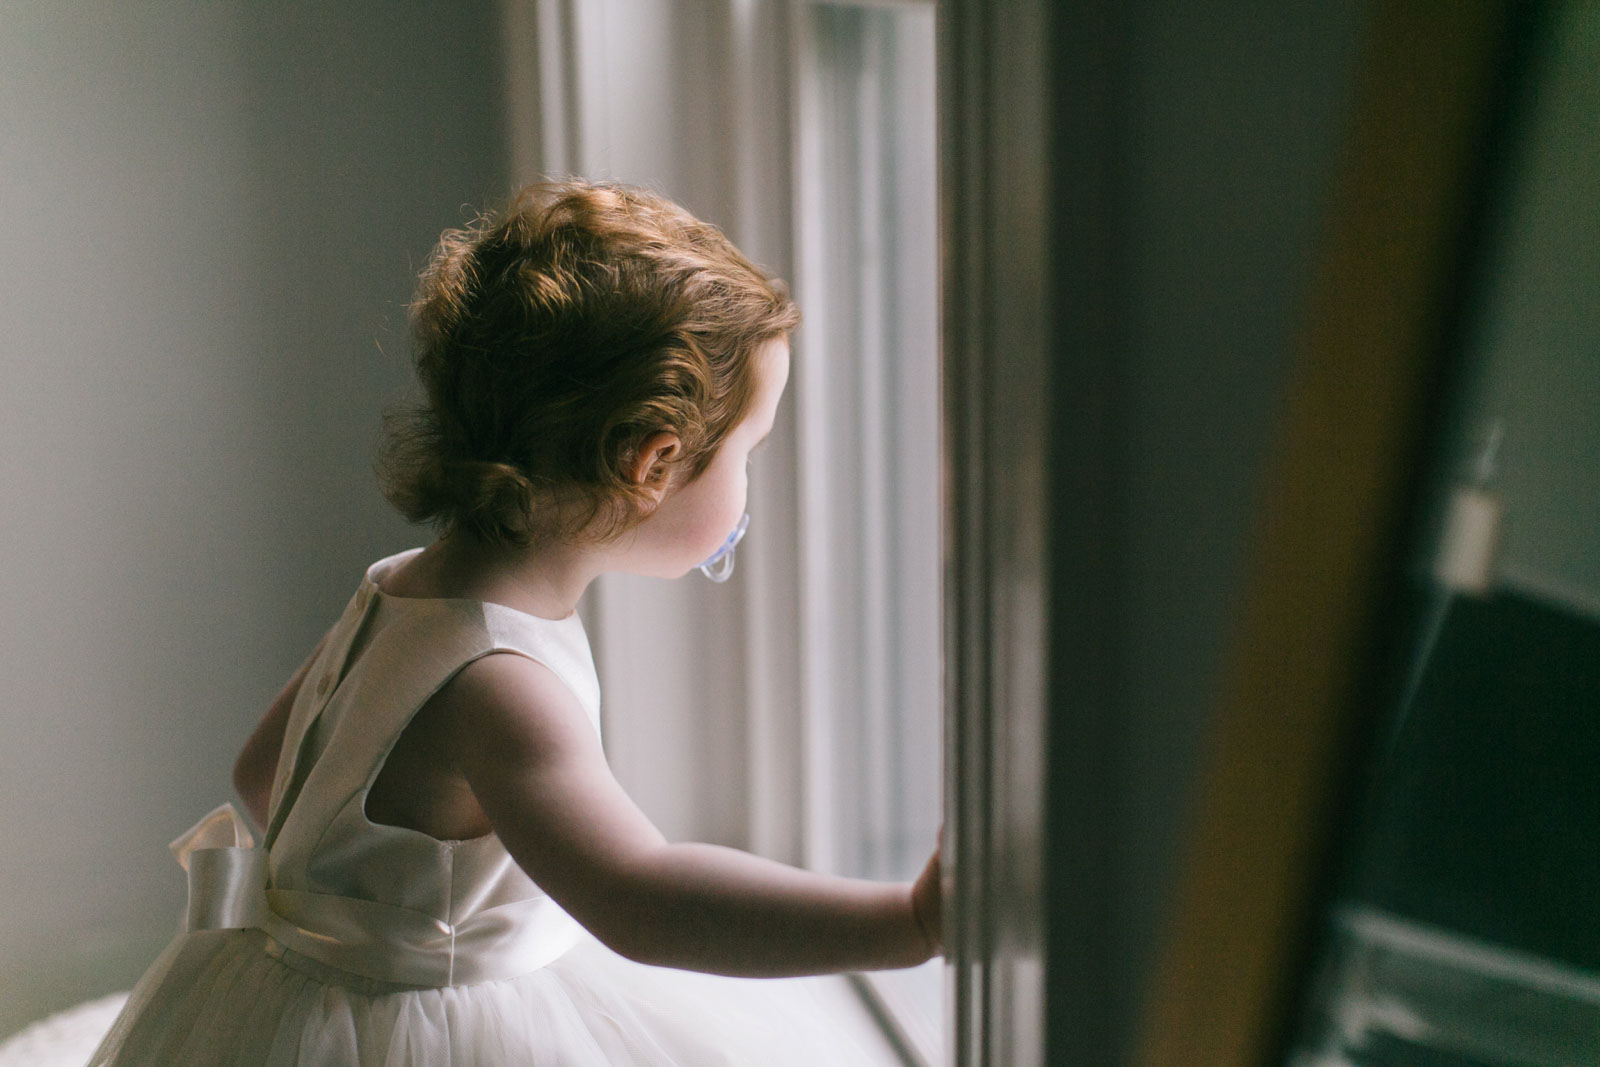 candid of flower girl looking out the window, getting ready photos with natural light